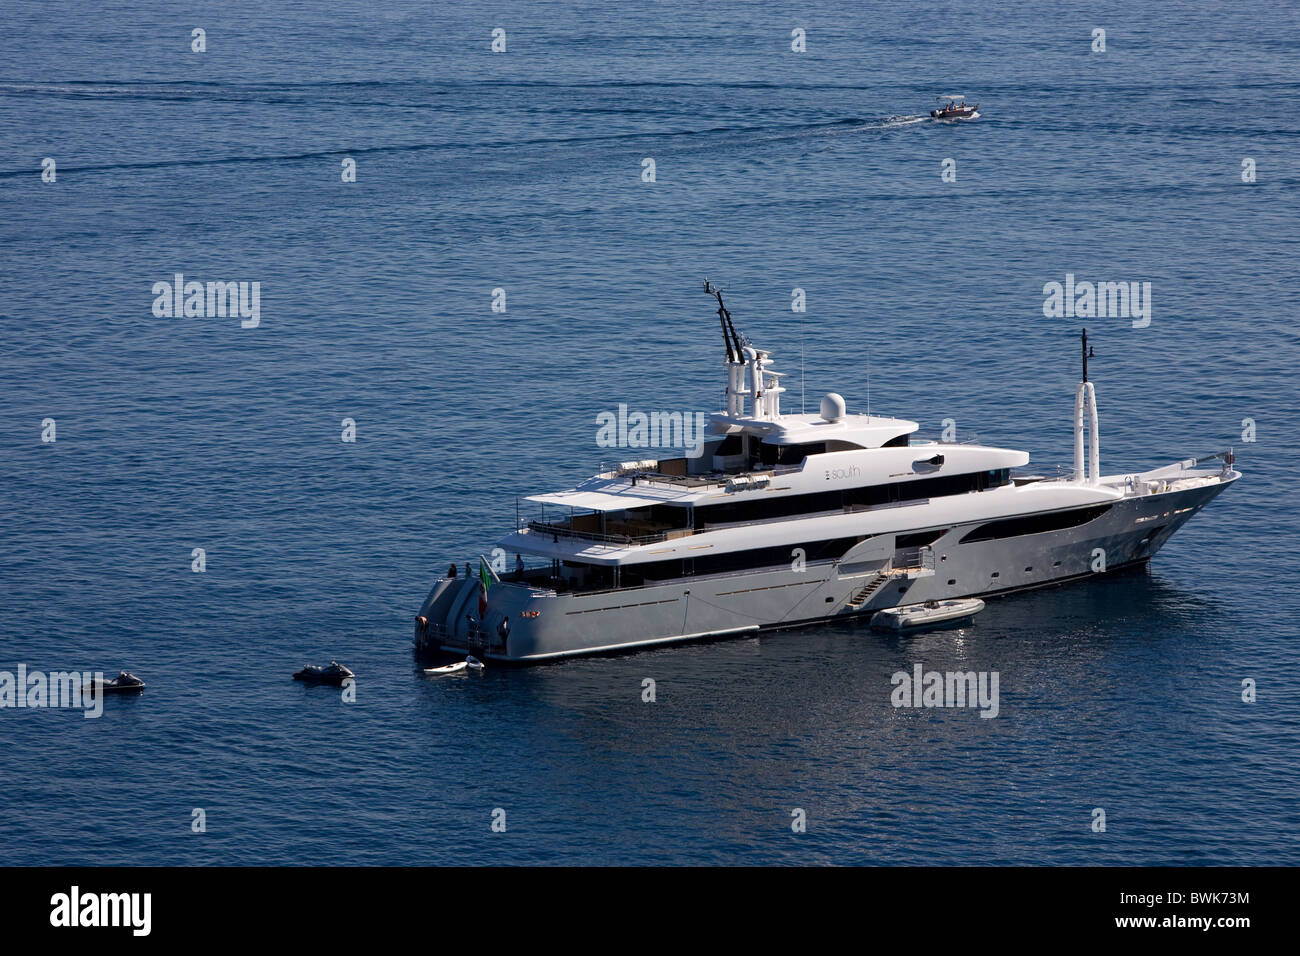 Yacht of the fashion designers Dolce & Gabbana, D & C, water sports, luxury yacht, Taormina, province of - Stock Image